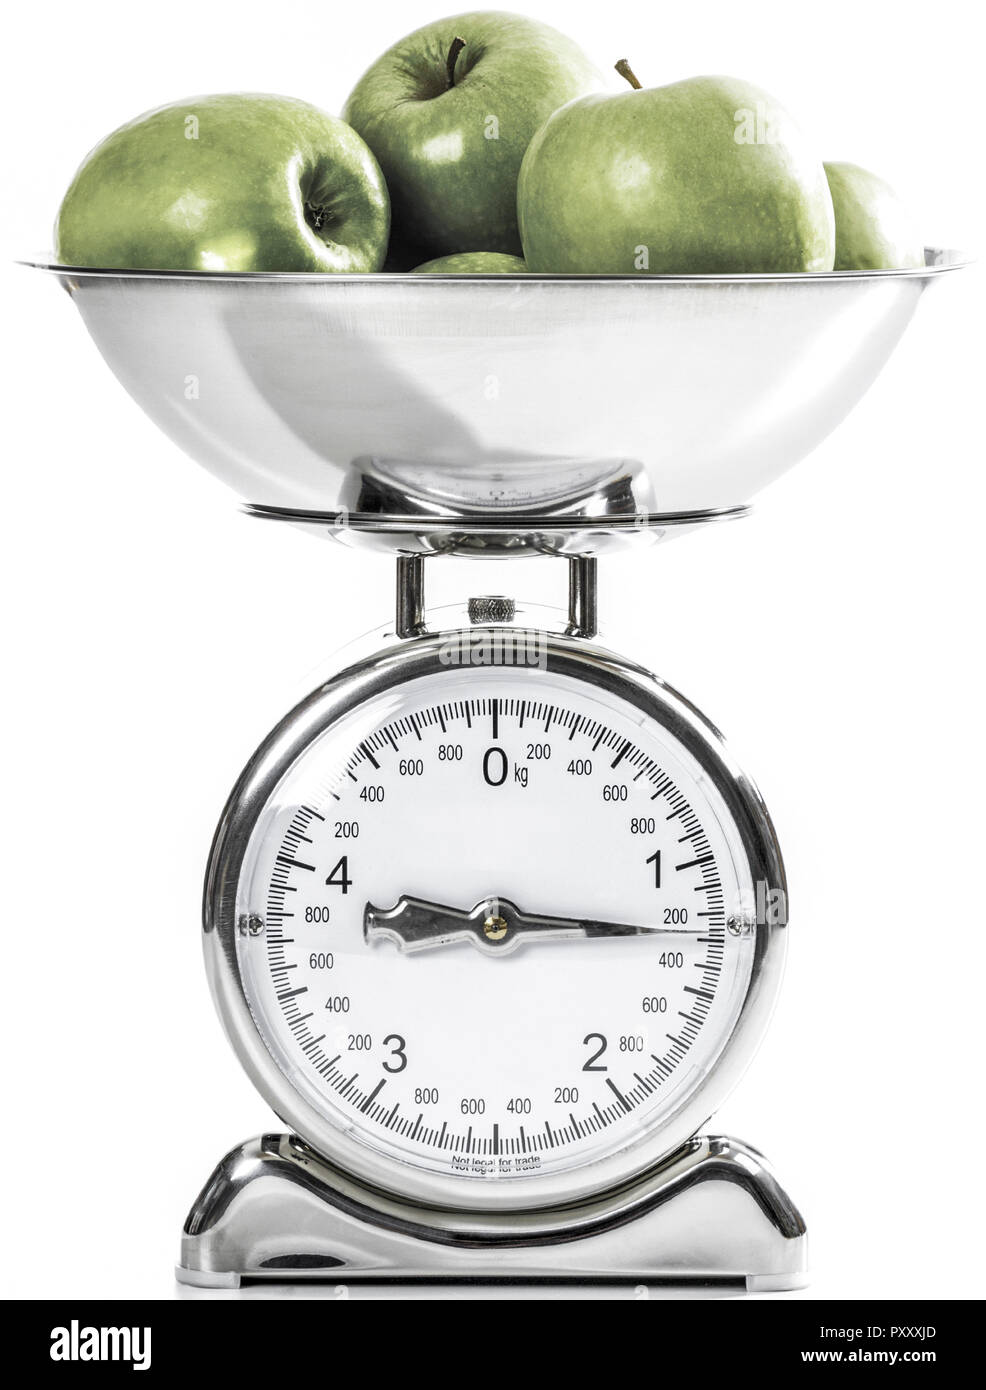 Weigh Scales Stock Photos Weigh Scales Stock Images Page 2 Alamy